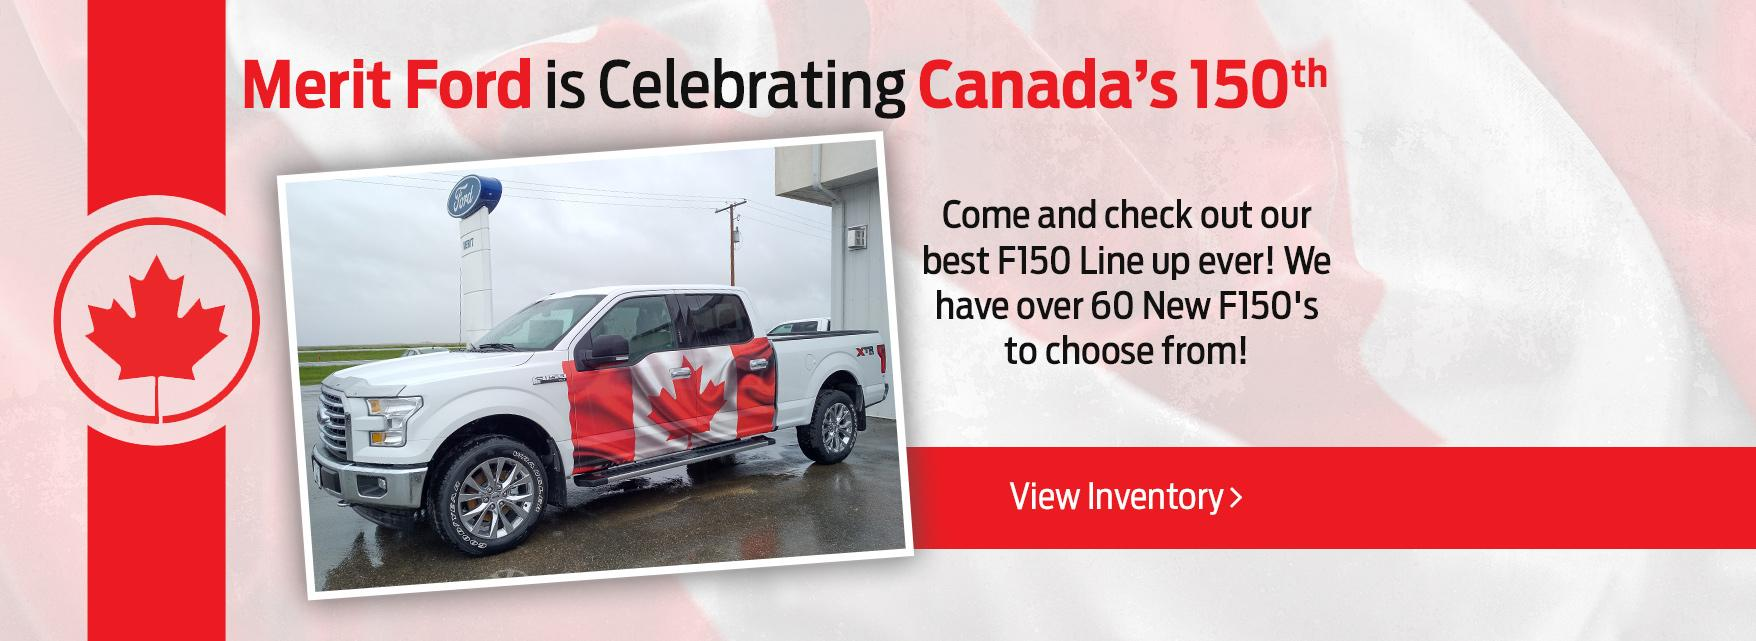 Canada 150 offer